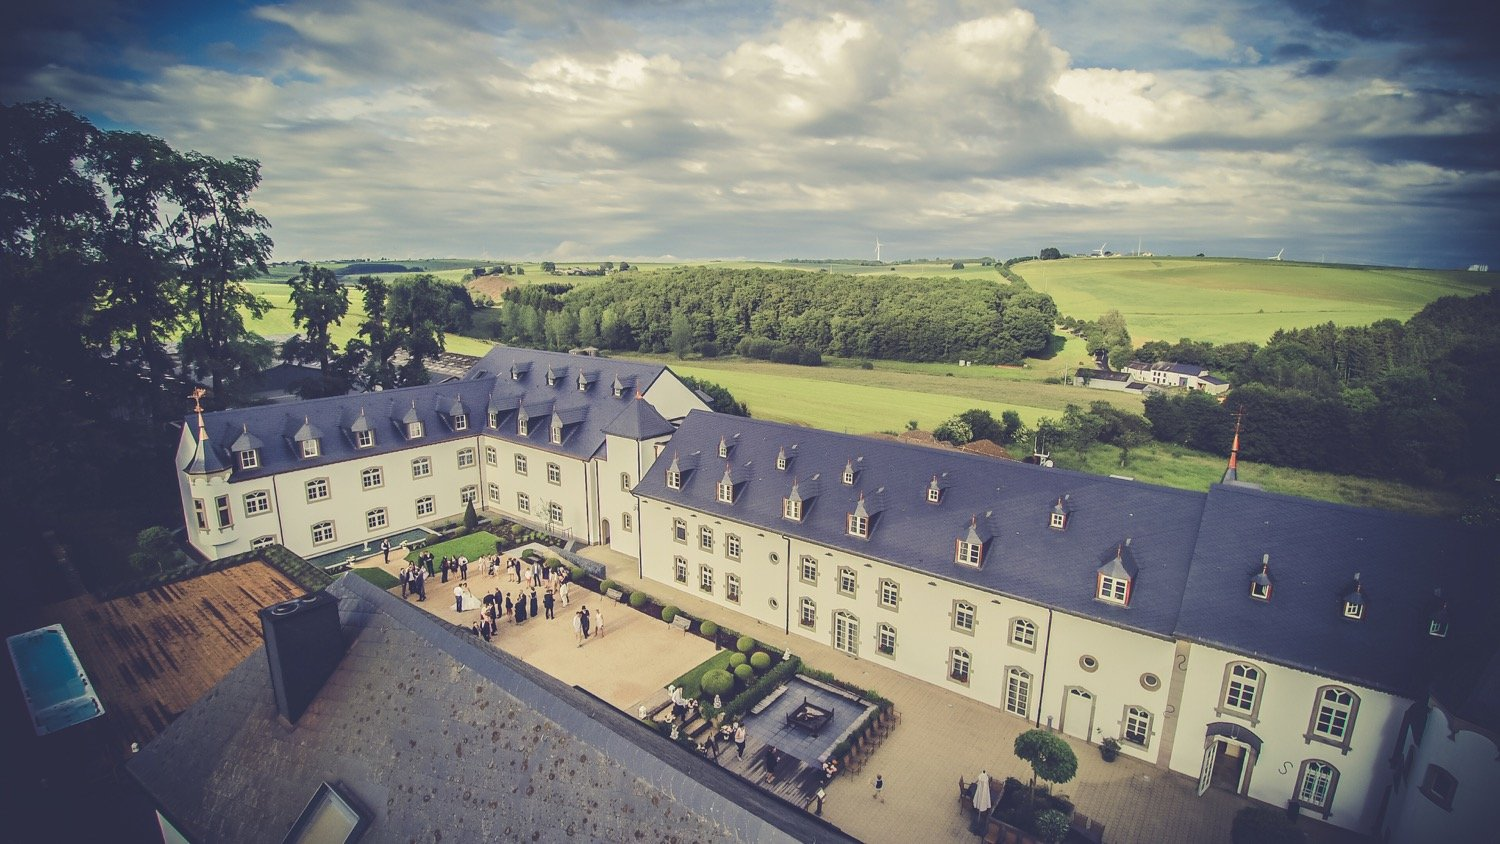 Chateau Urspelt - aerial view